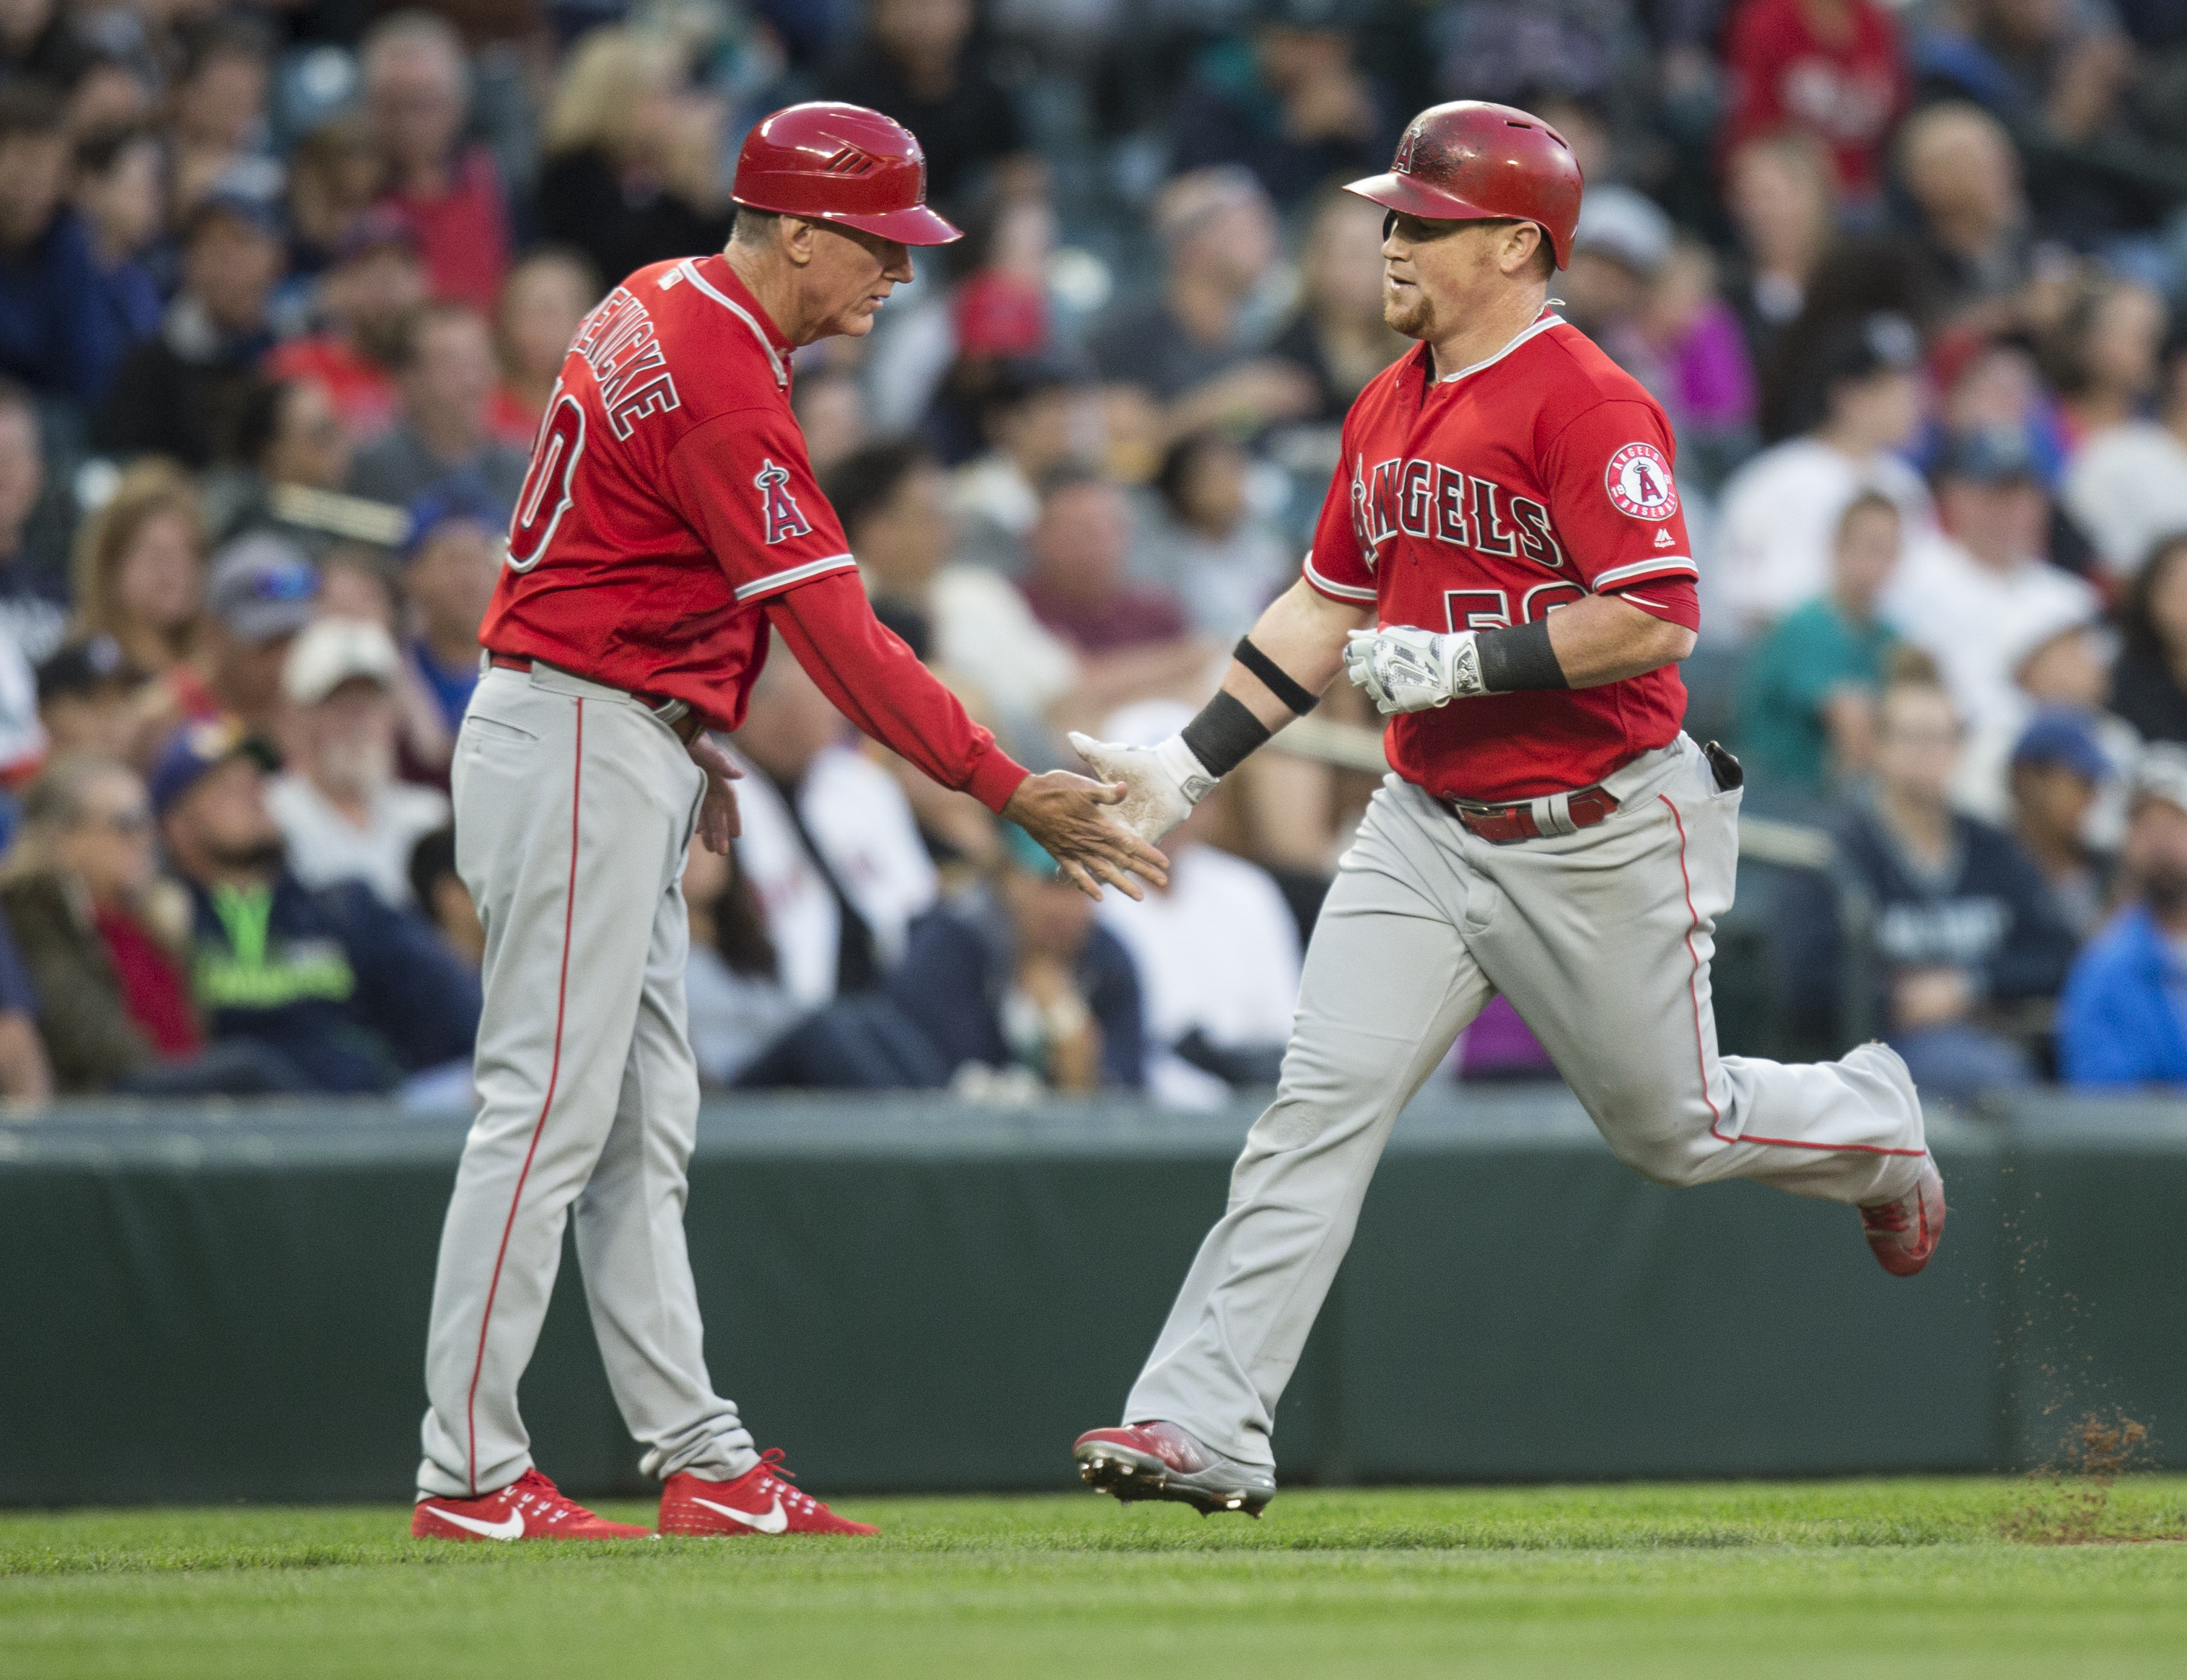 Los Angeles Angels' Kole Calhoun is congratulated by third base coach Rick Roenicke after hitting a solo home run off of Seattle Mariners relief pitcher Pat Venditte during the third inning of a baseball game, Saturday, Sept. 3, 2016, in Seattle. It was C